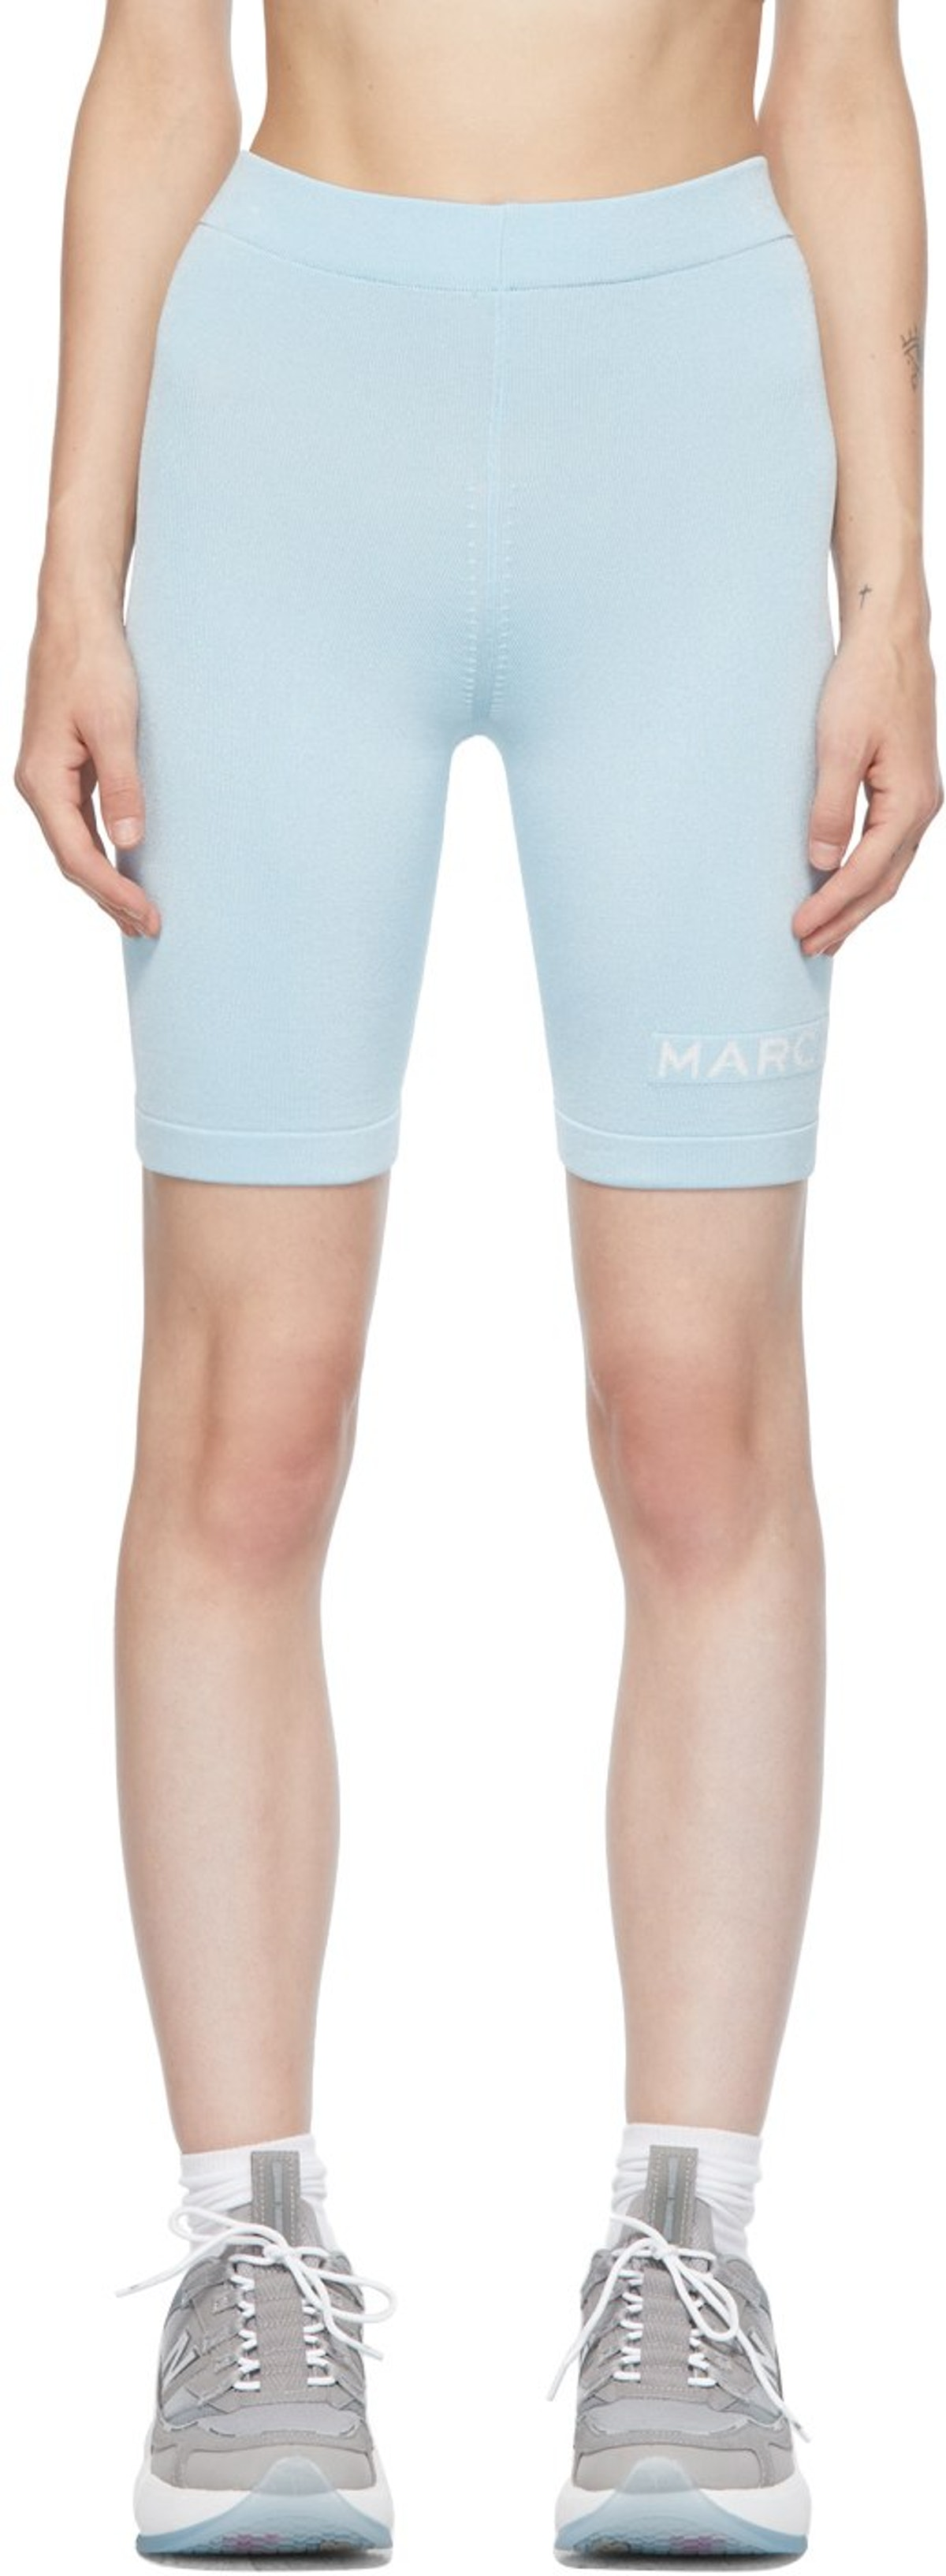 Marc Jacobs Blue 'The Sport Shorts' Shorts